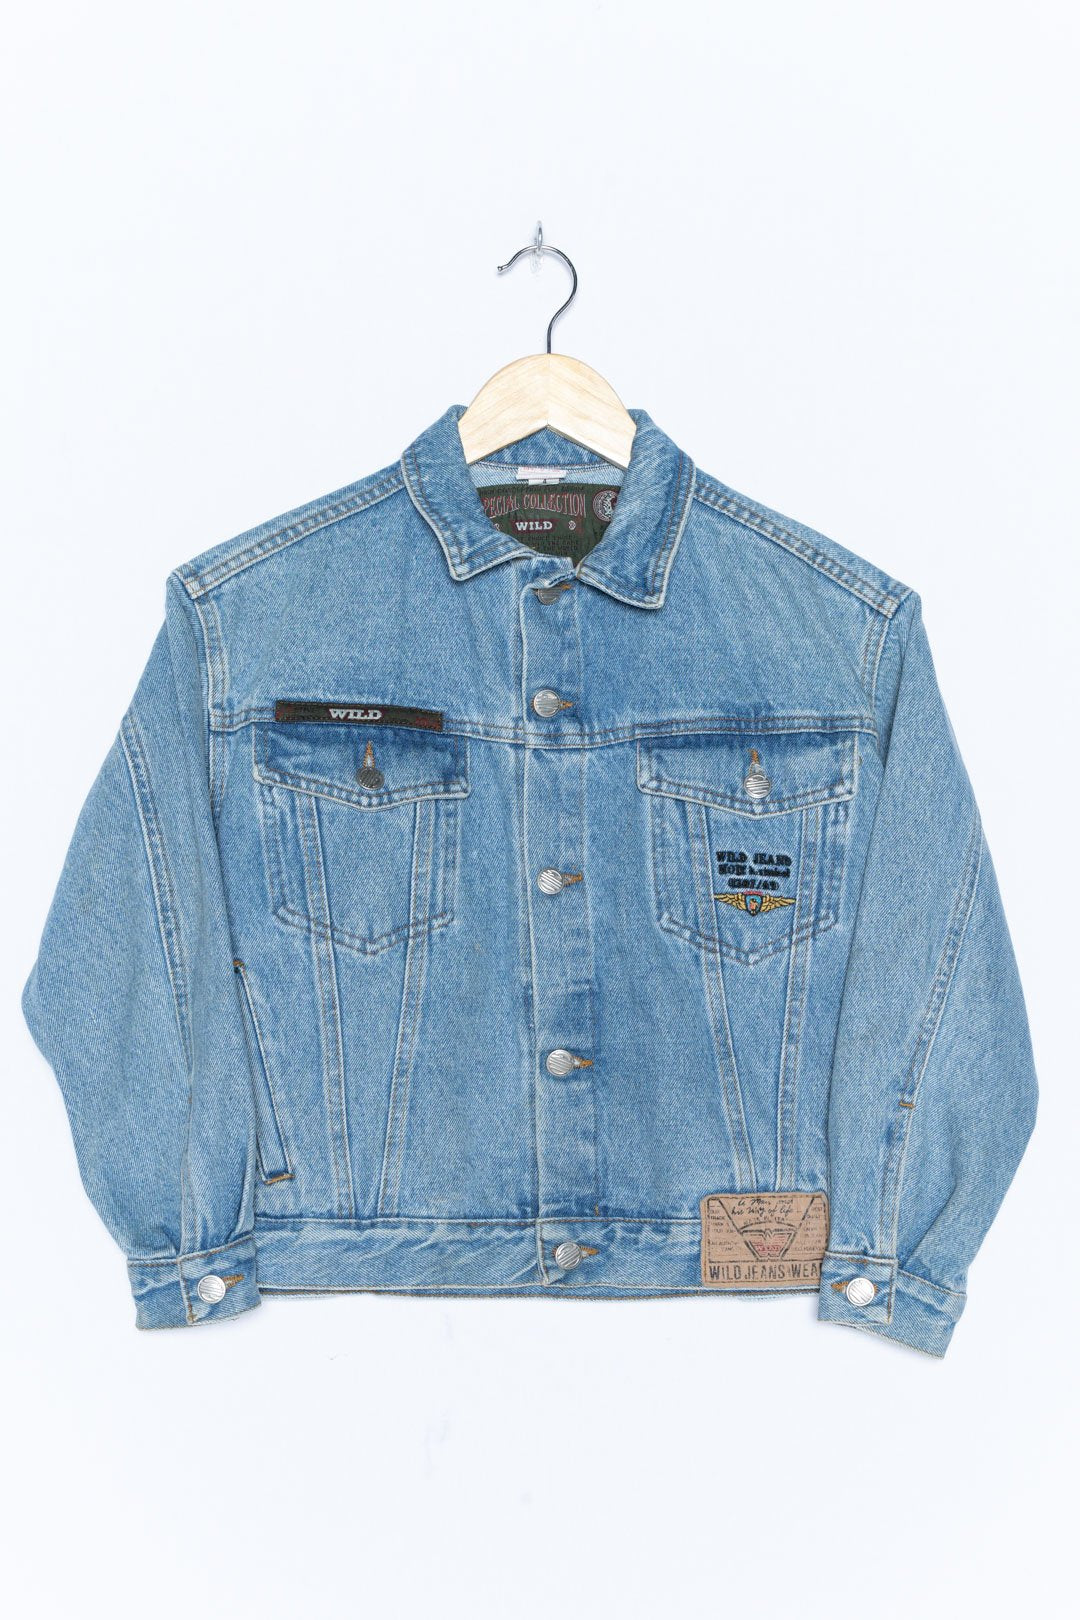 Blue Denim Jacket XS - VinoKilo.com